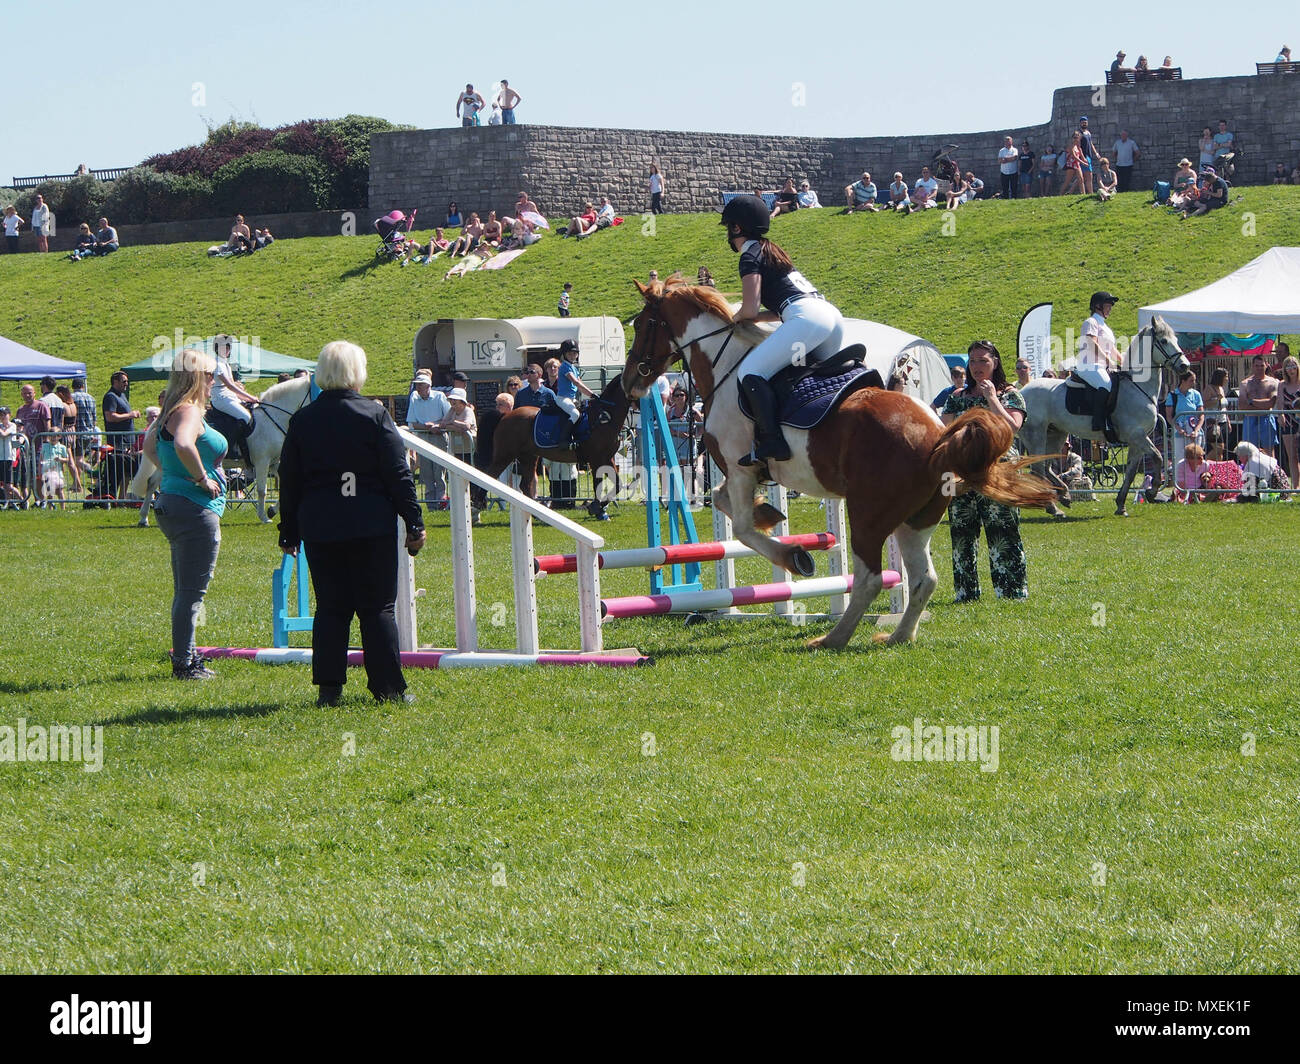 A Horse Jumps Over A Hurdle At A Showjumping Event Stock Photo Alamy